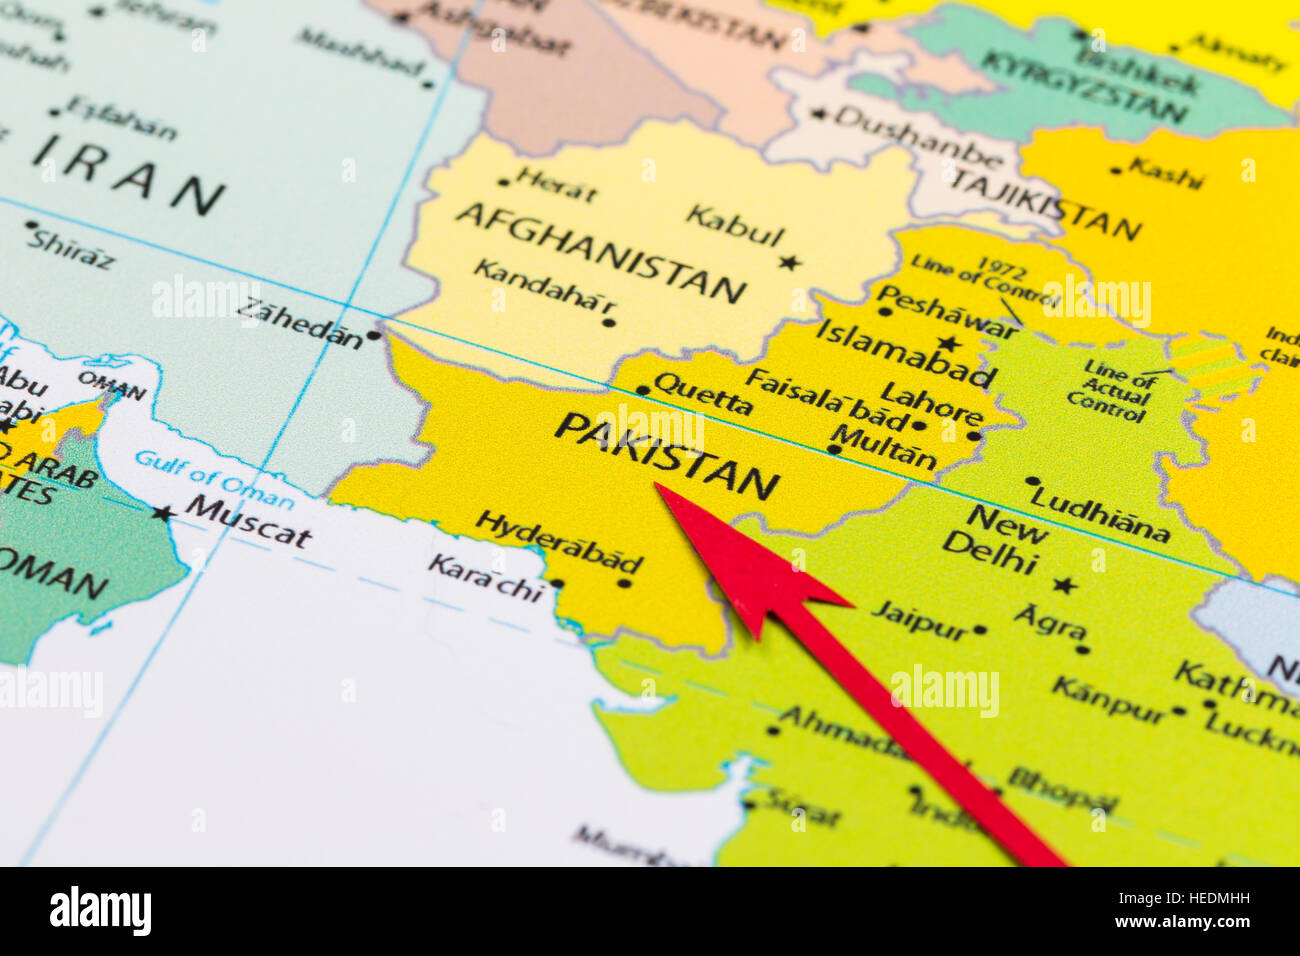 A Map Of Asia.Red Arrow Pointing Pakistan On The Map Of Asia Continent Stock Photo